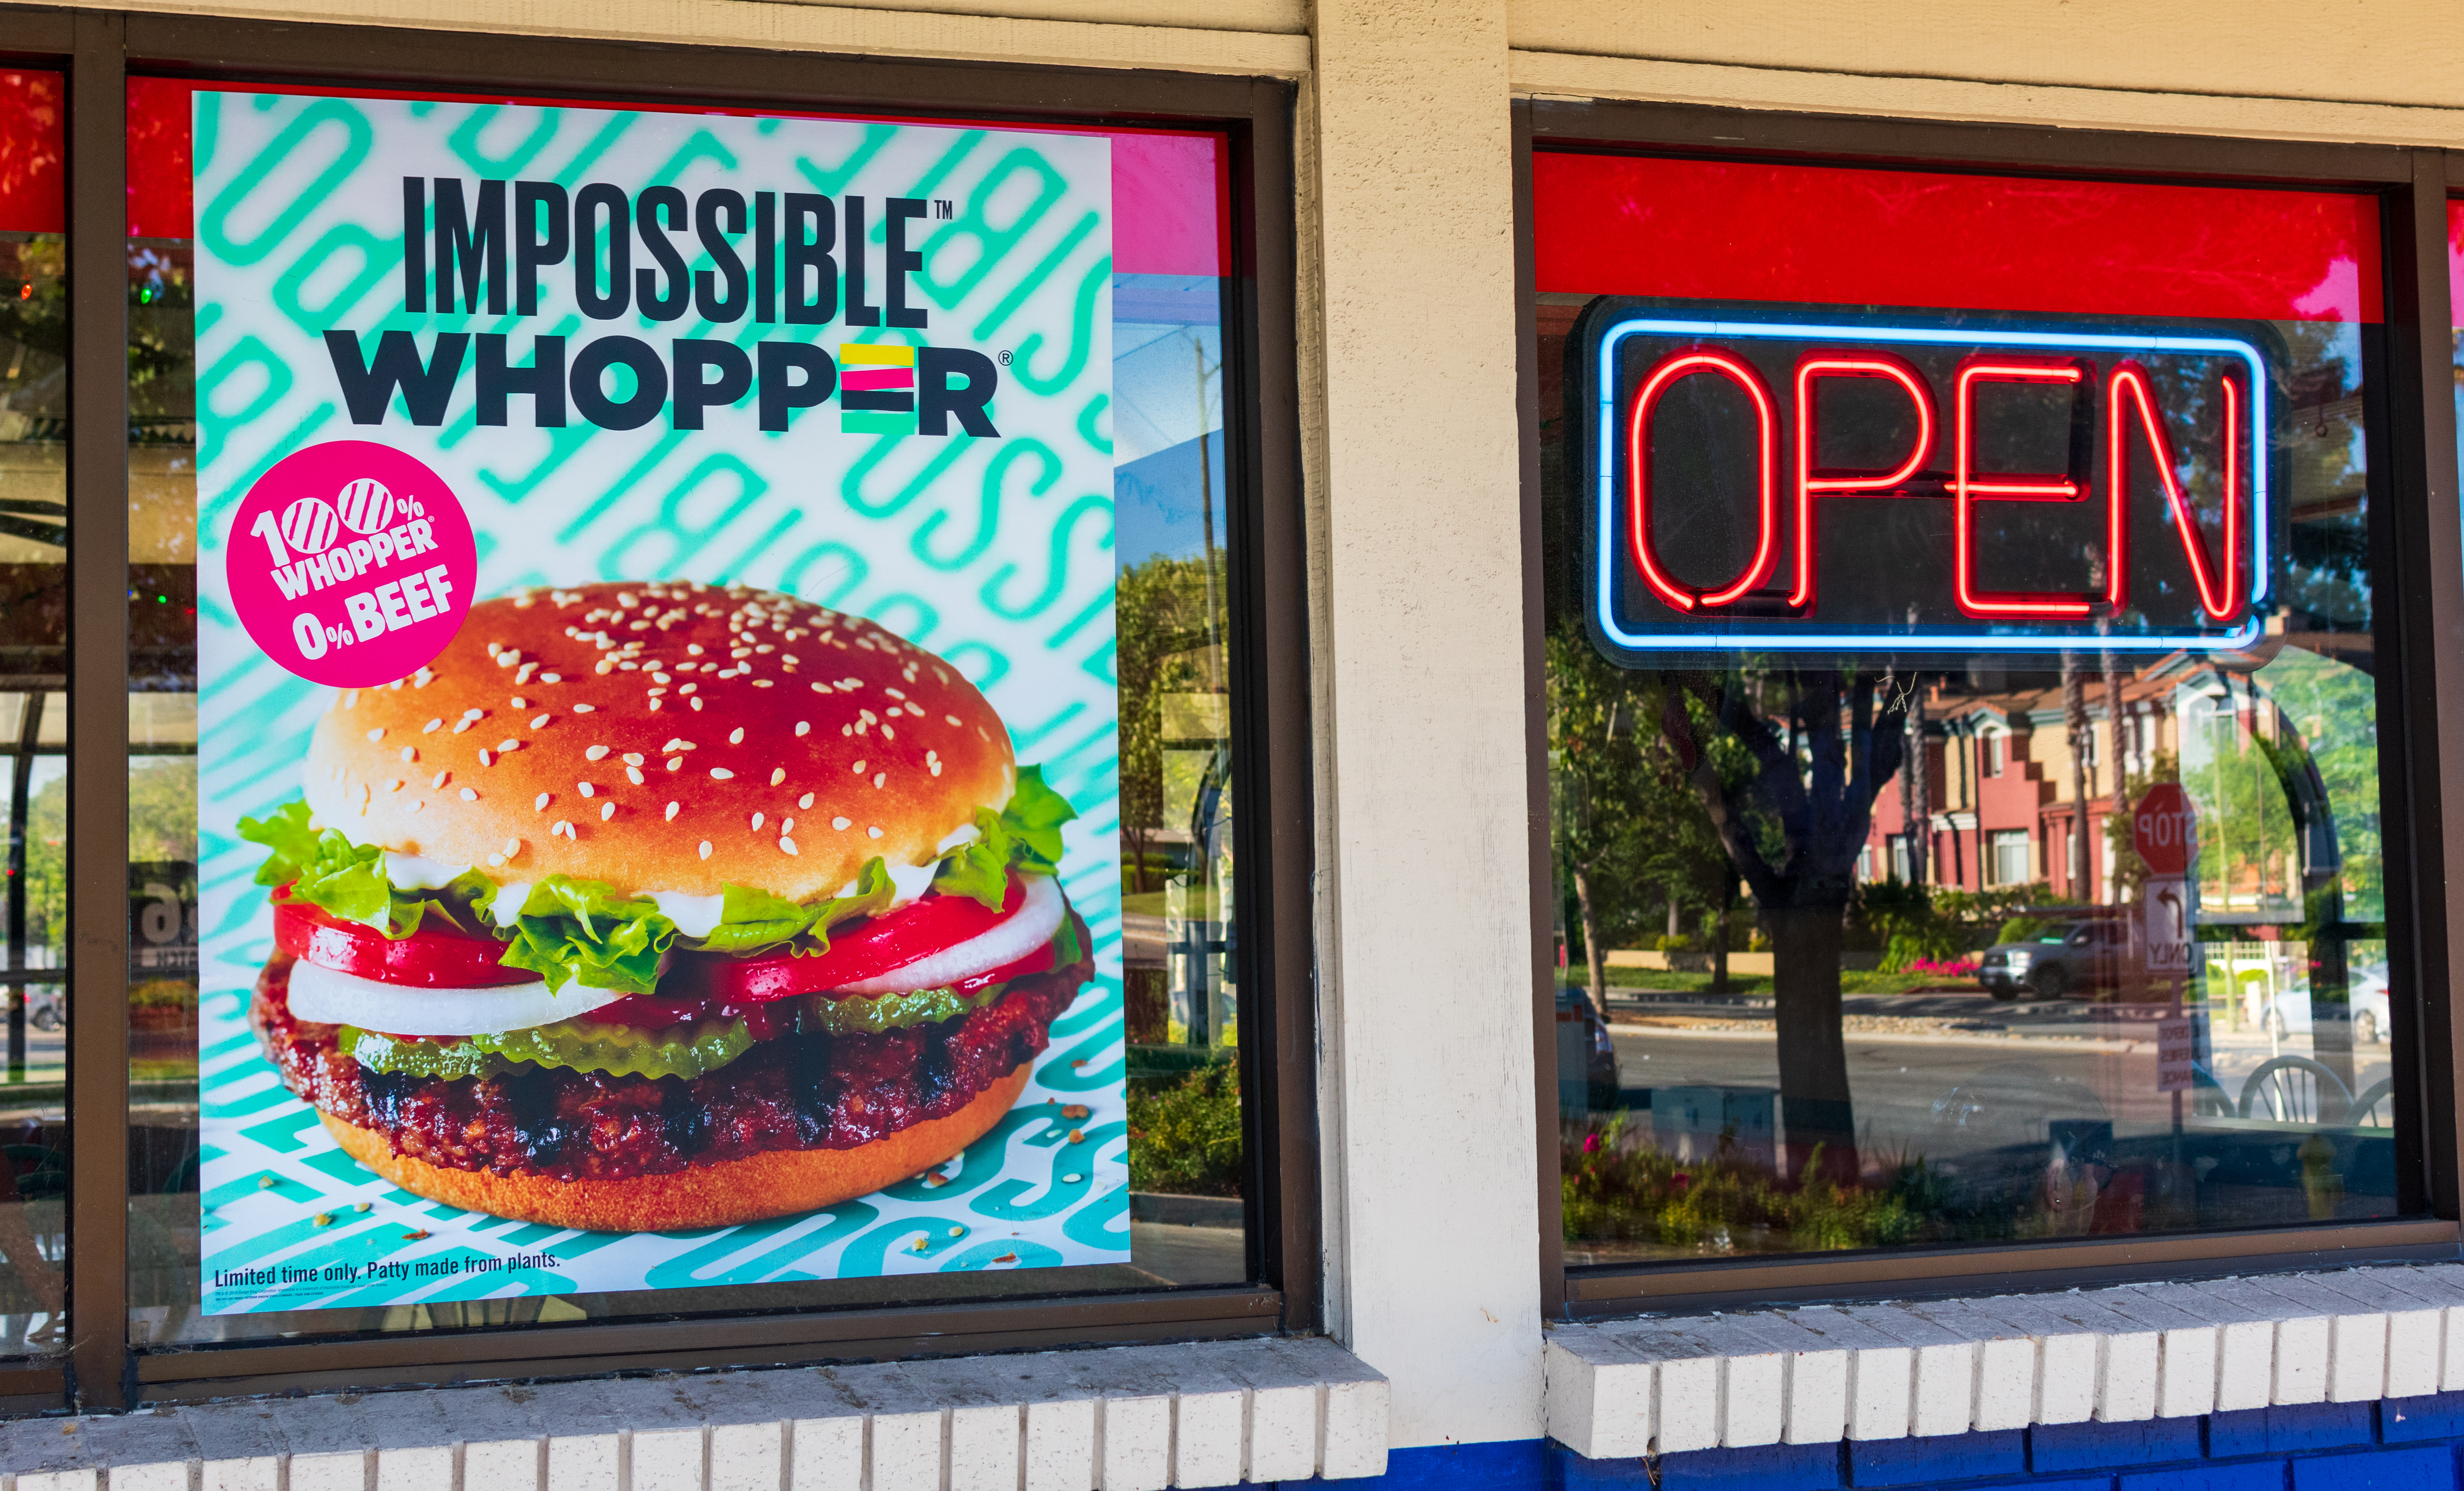 food industry market research impossible whopper